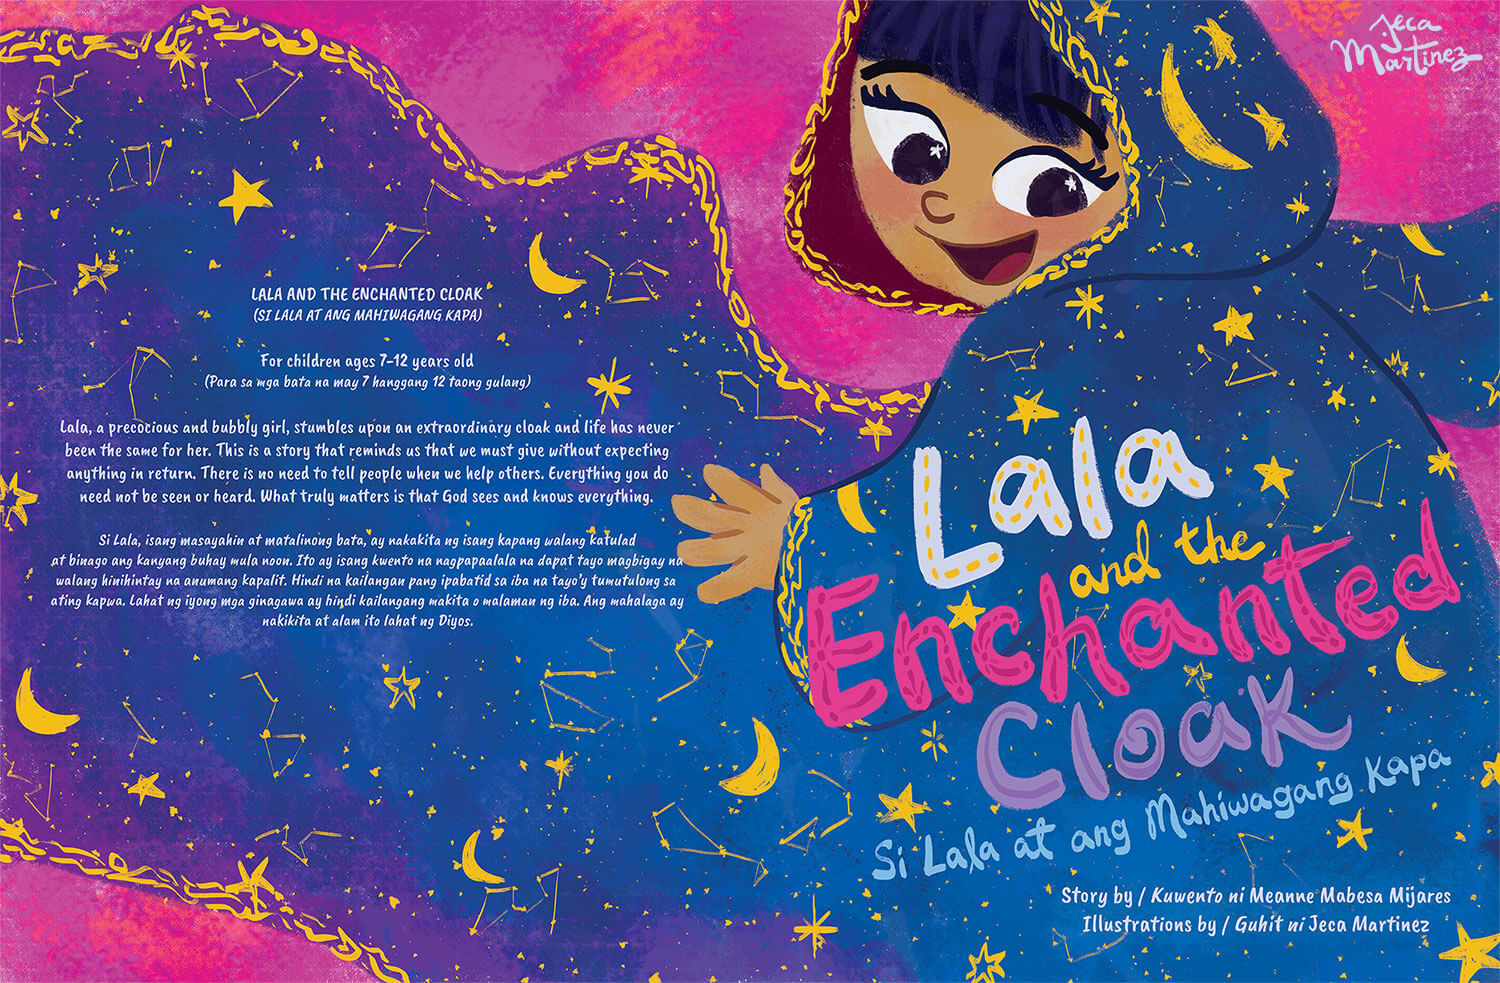 Full Children's Book Cover Spread of Lala and the Enchanted Cloak for Vibal Publishing by Jeca Martinez